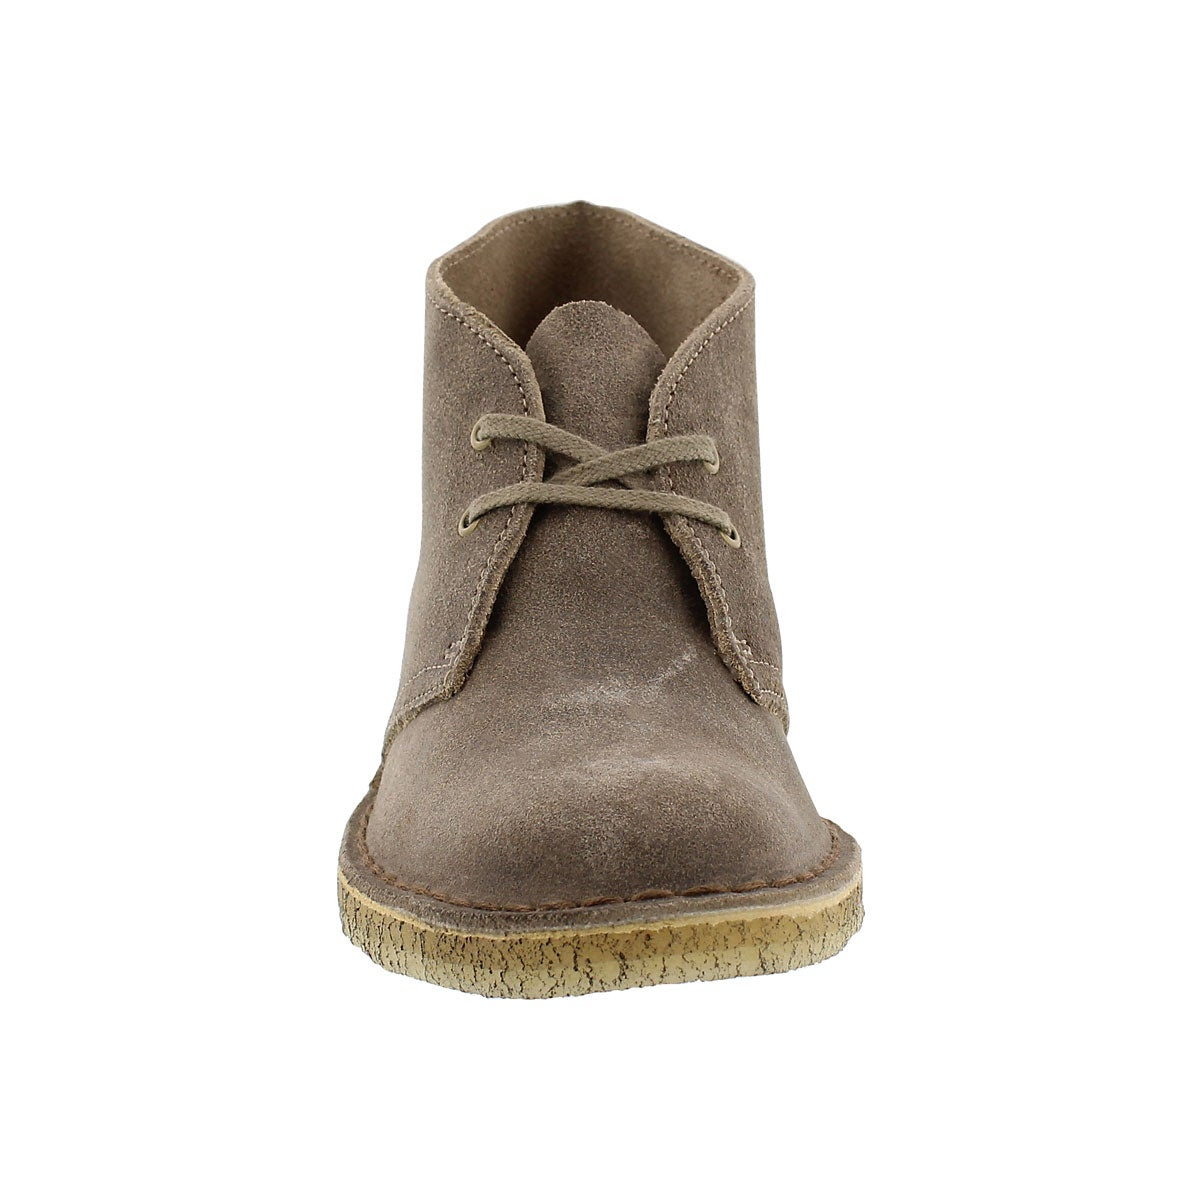 Lds Originals Desert Boot tpe distressed